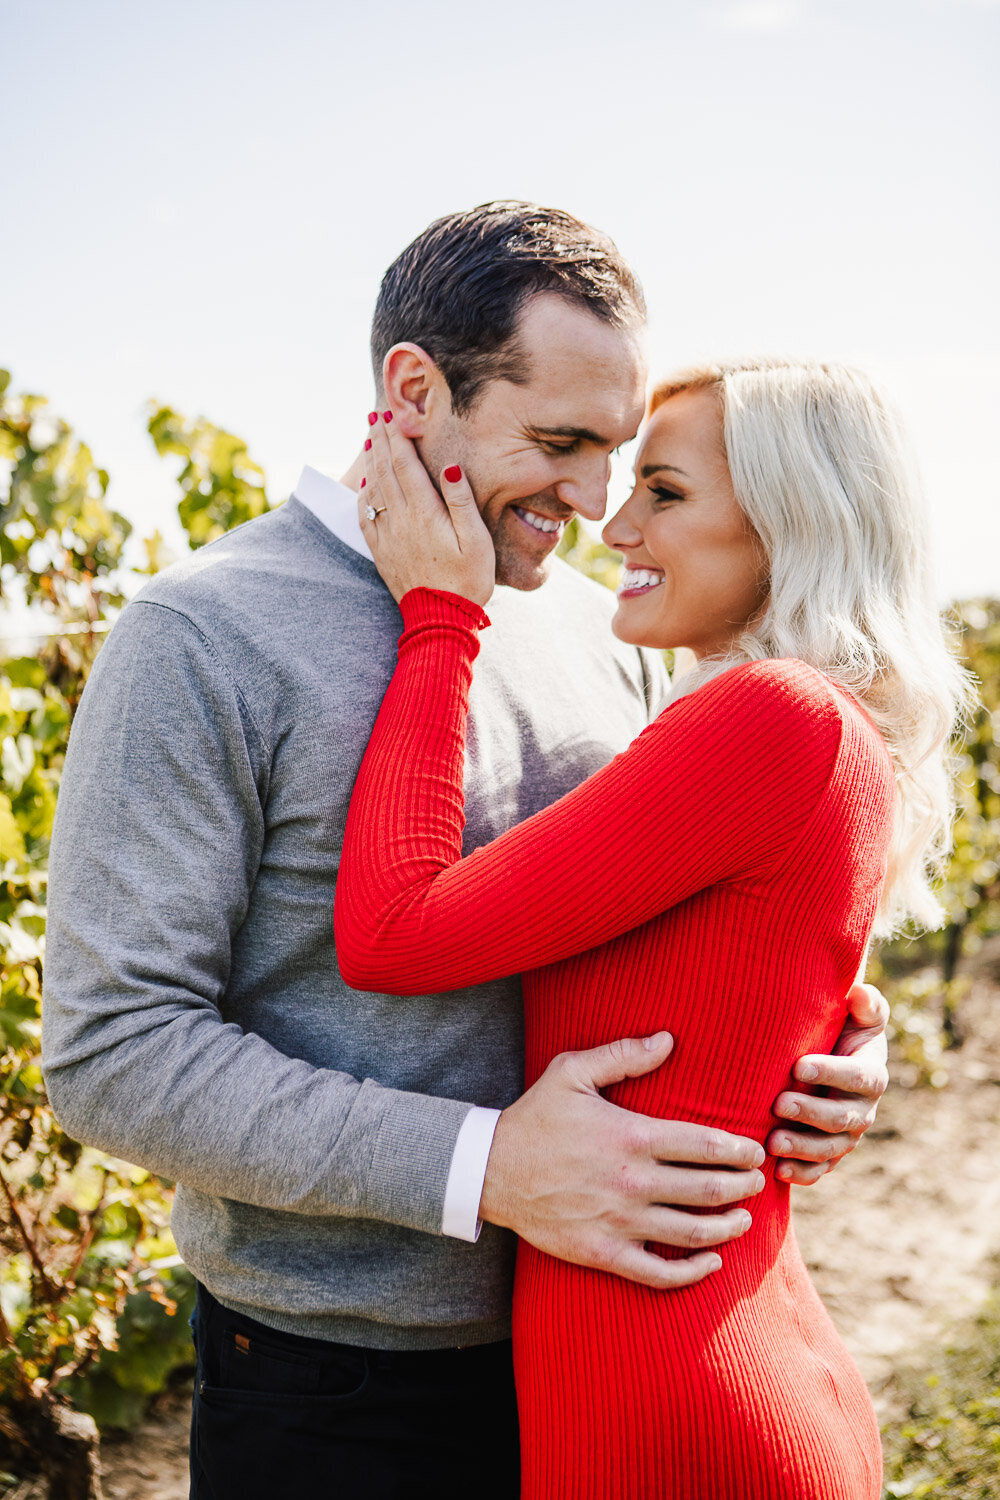 Couple embracing in vineyard